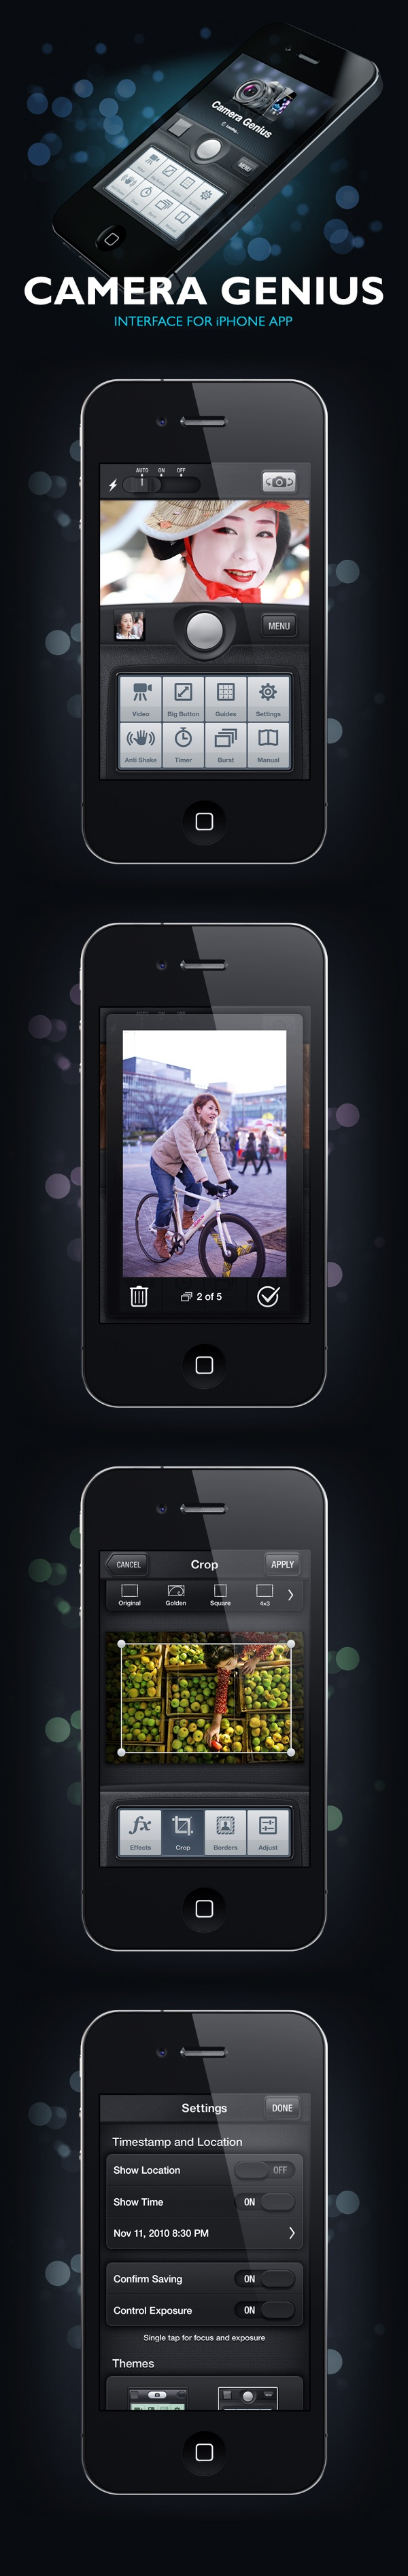 "Camera Genius by Artua - ""A camera application that significantly increase standard functionality. It works on almost any Apple device that has iOS 4.0+ installed. It has separate focus and exposure areas, picture editing tools and effects, social network sharing feature and more..."""